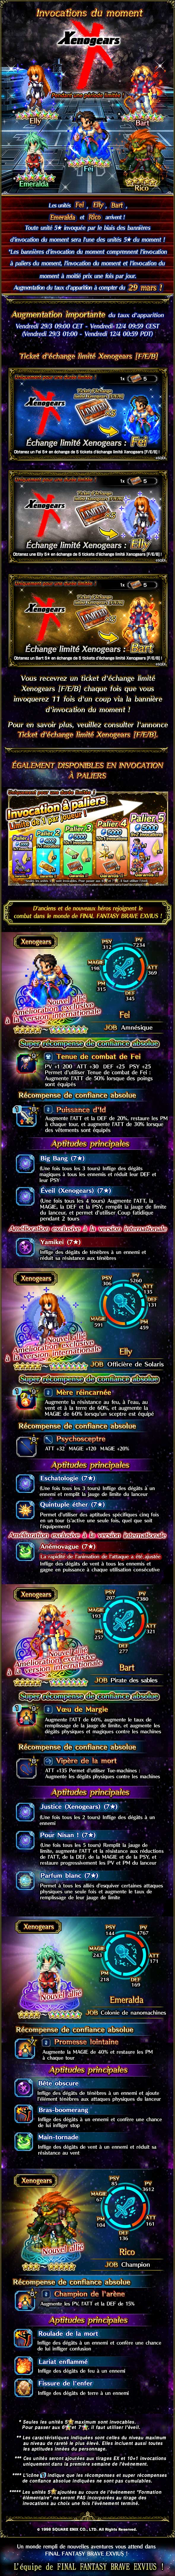 Invocations du moment - Collab Xenogears - du 29/03 au 12/04/19 20190328XenogearsGachaBanner